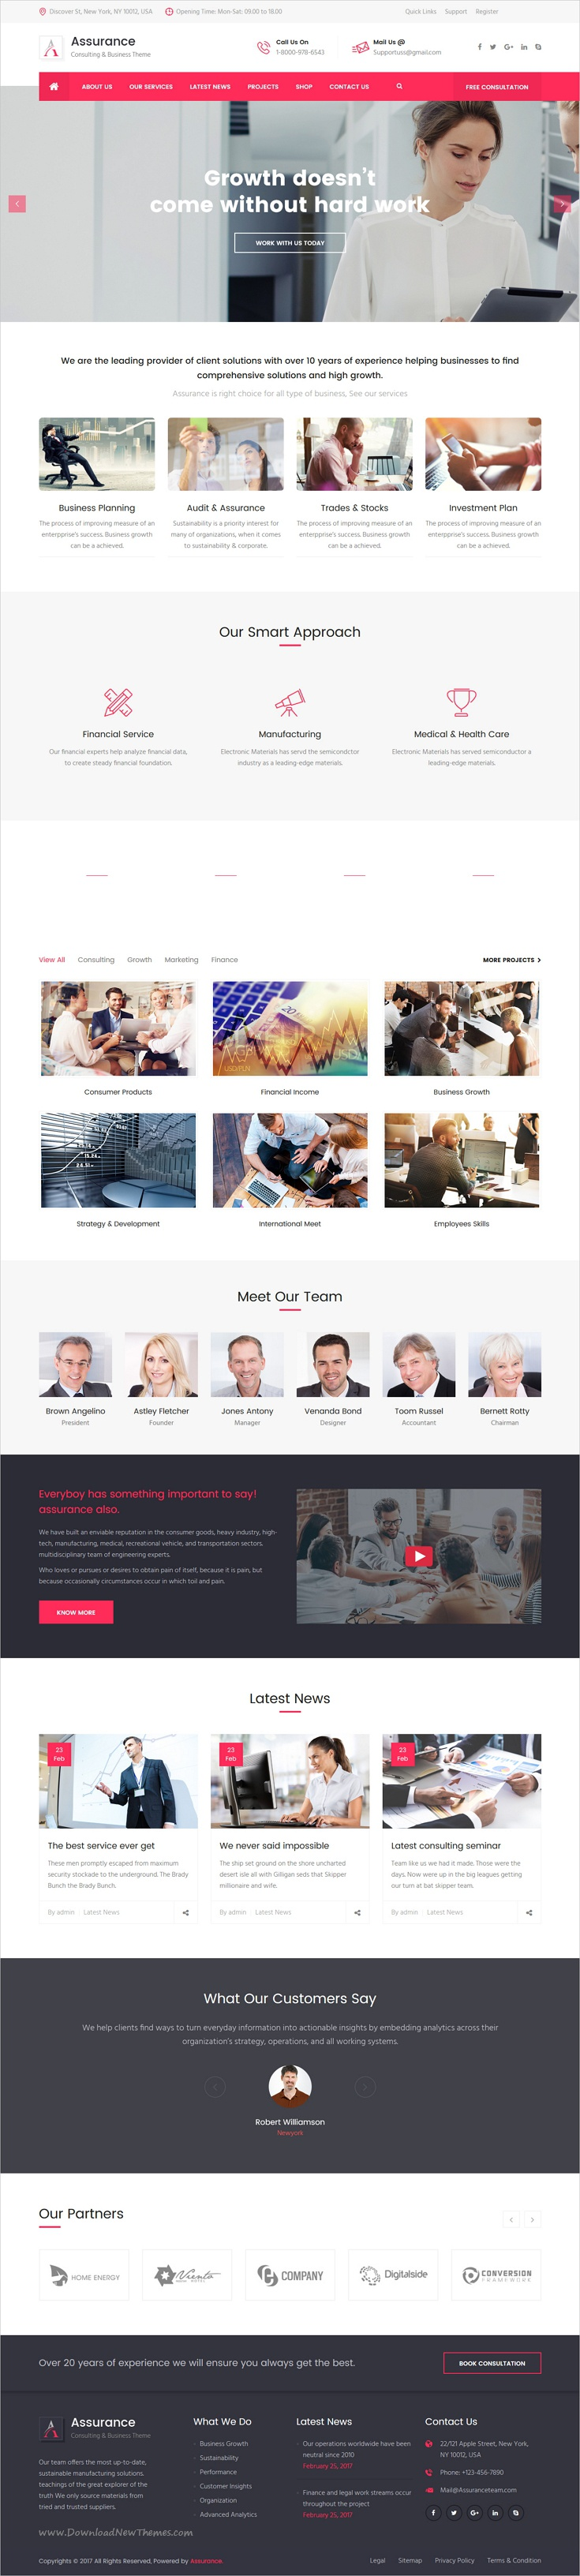 Assurance - Business Consulting and Professional Services WordPress ...